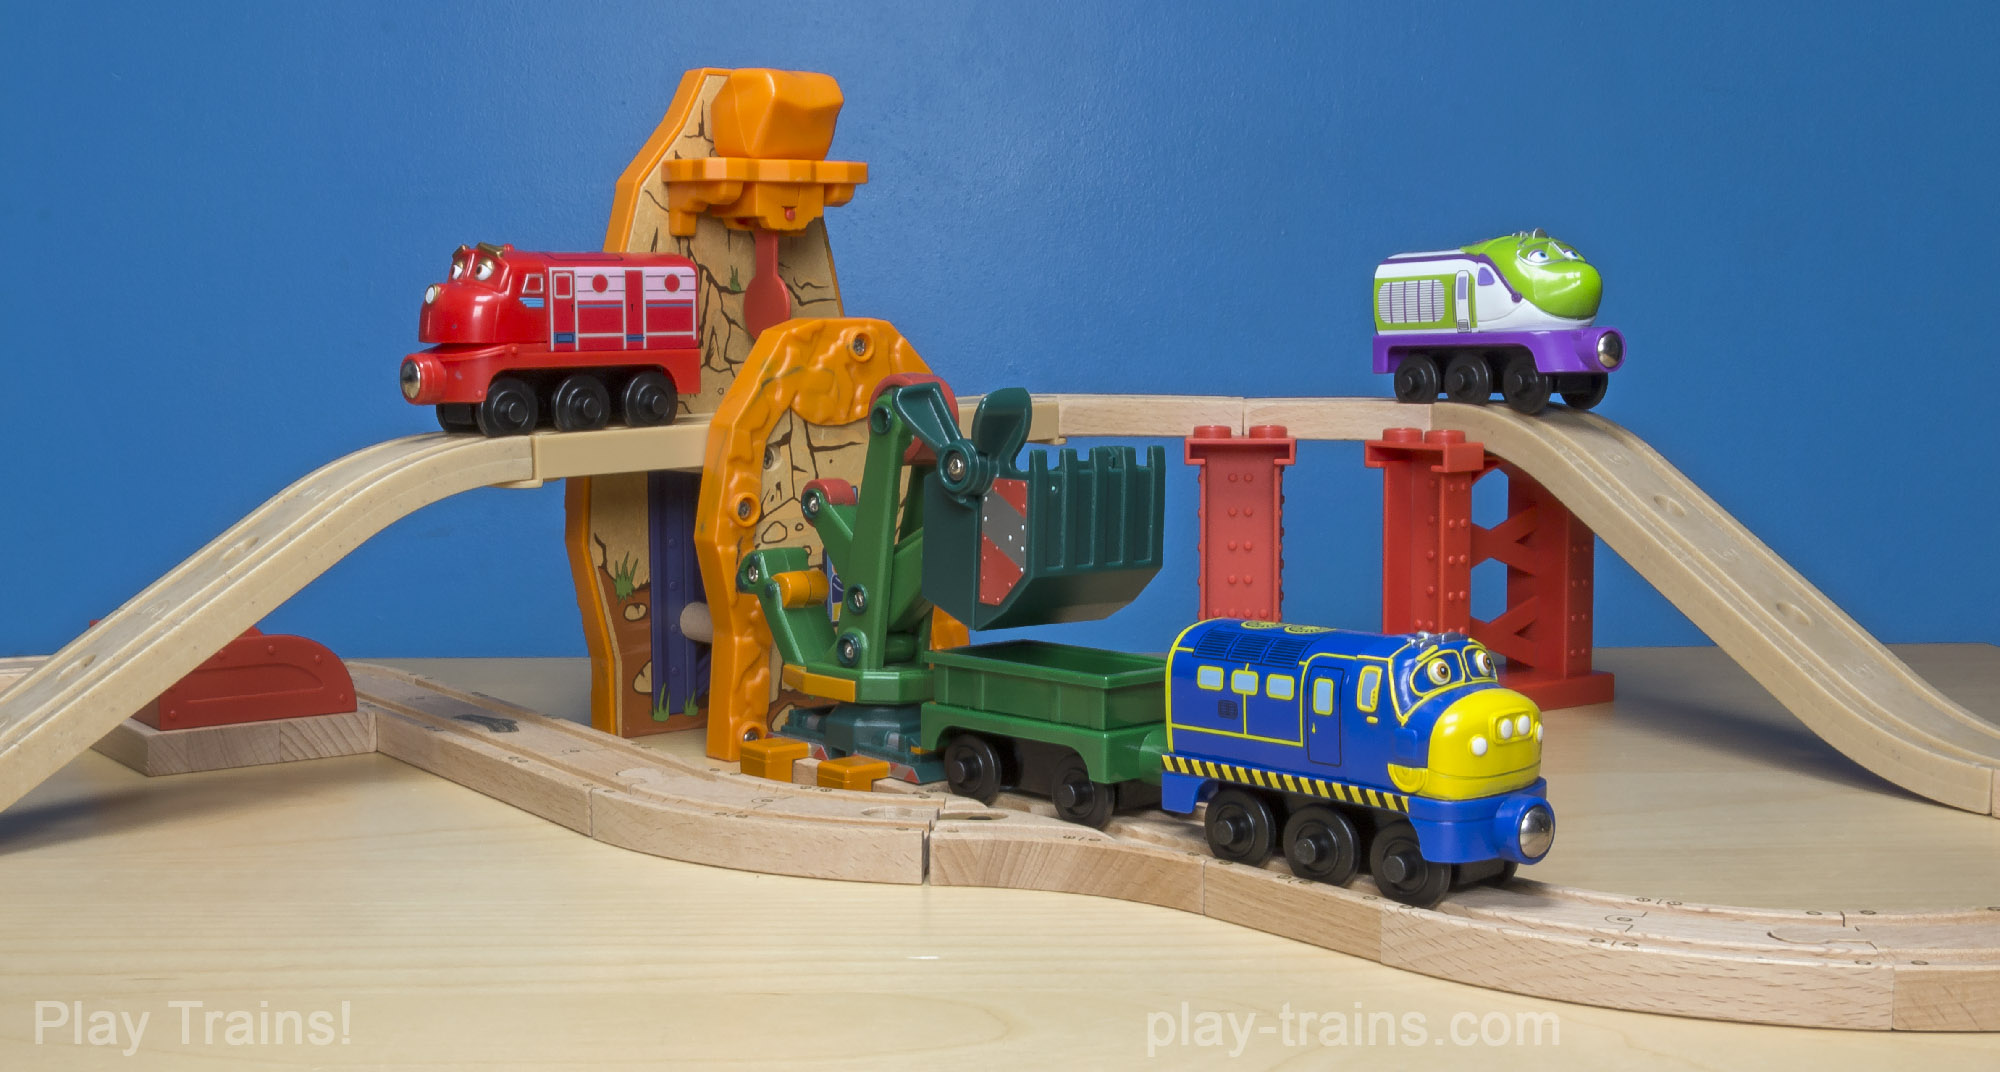 a60db38aa Chuggington Wooden Railway -- The Play Trains! Guide to Wooden Train Sets   expert